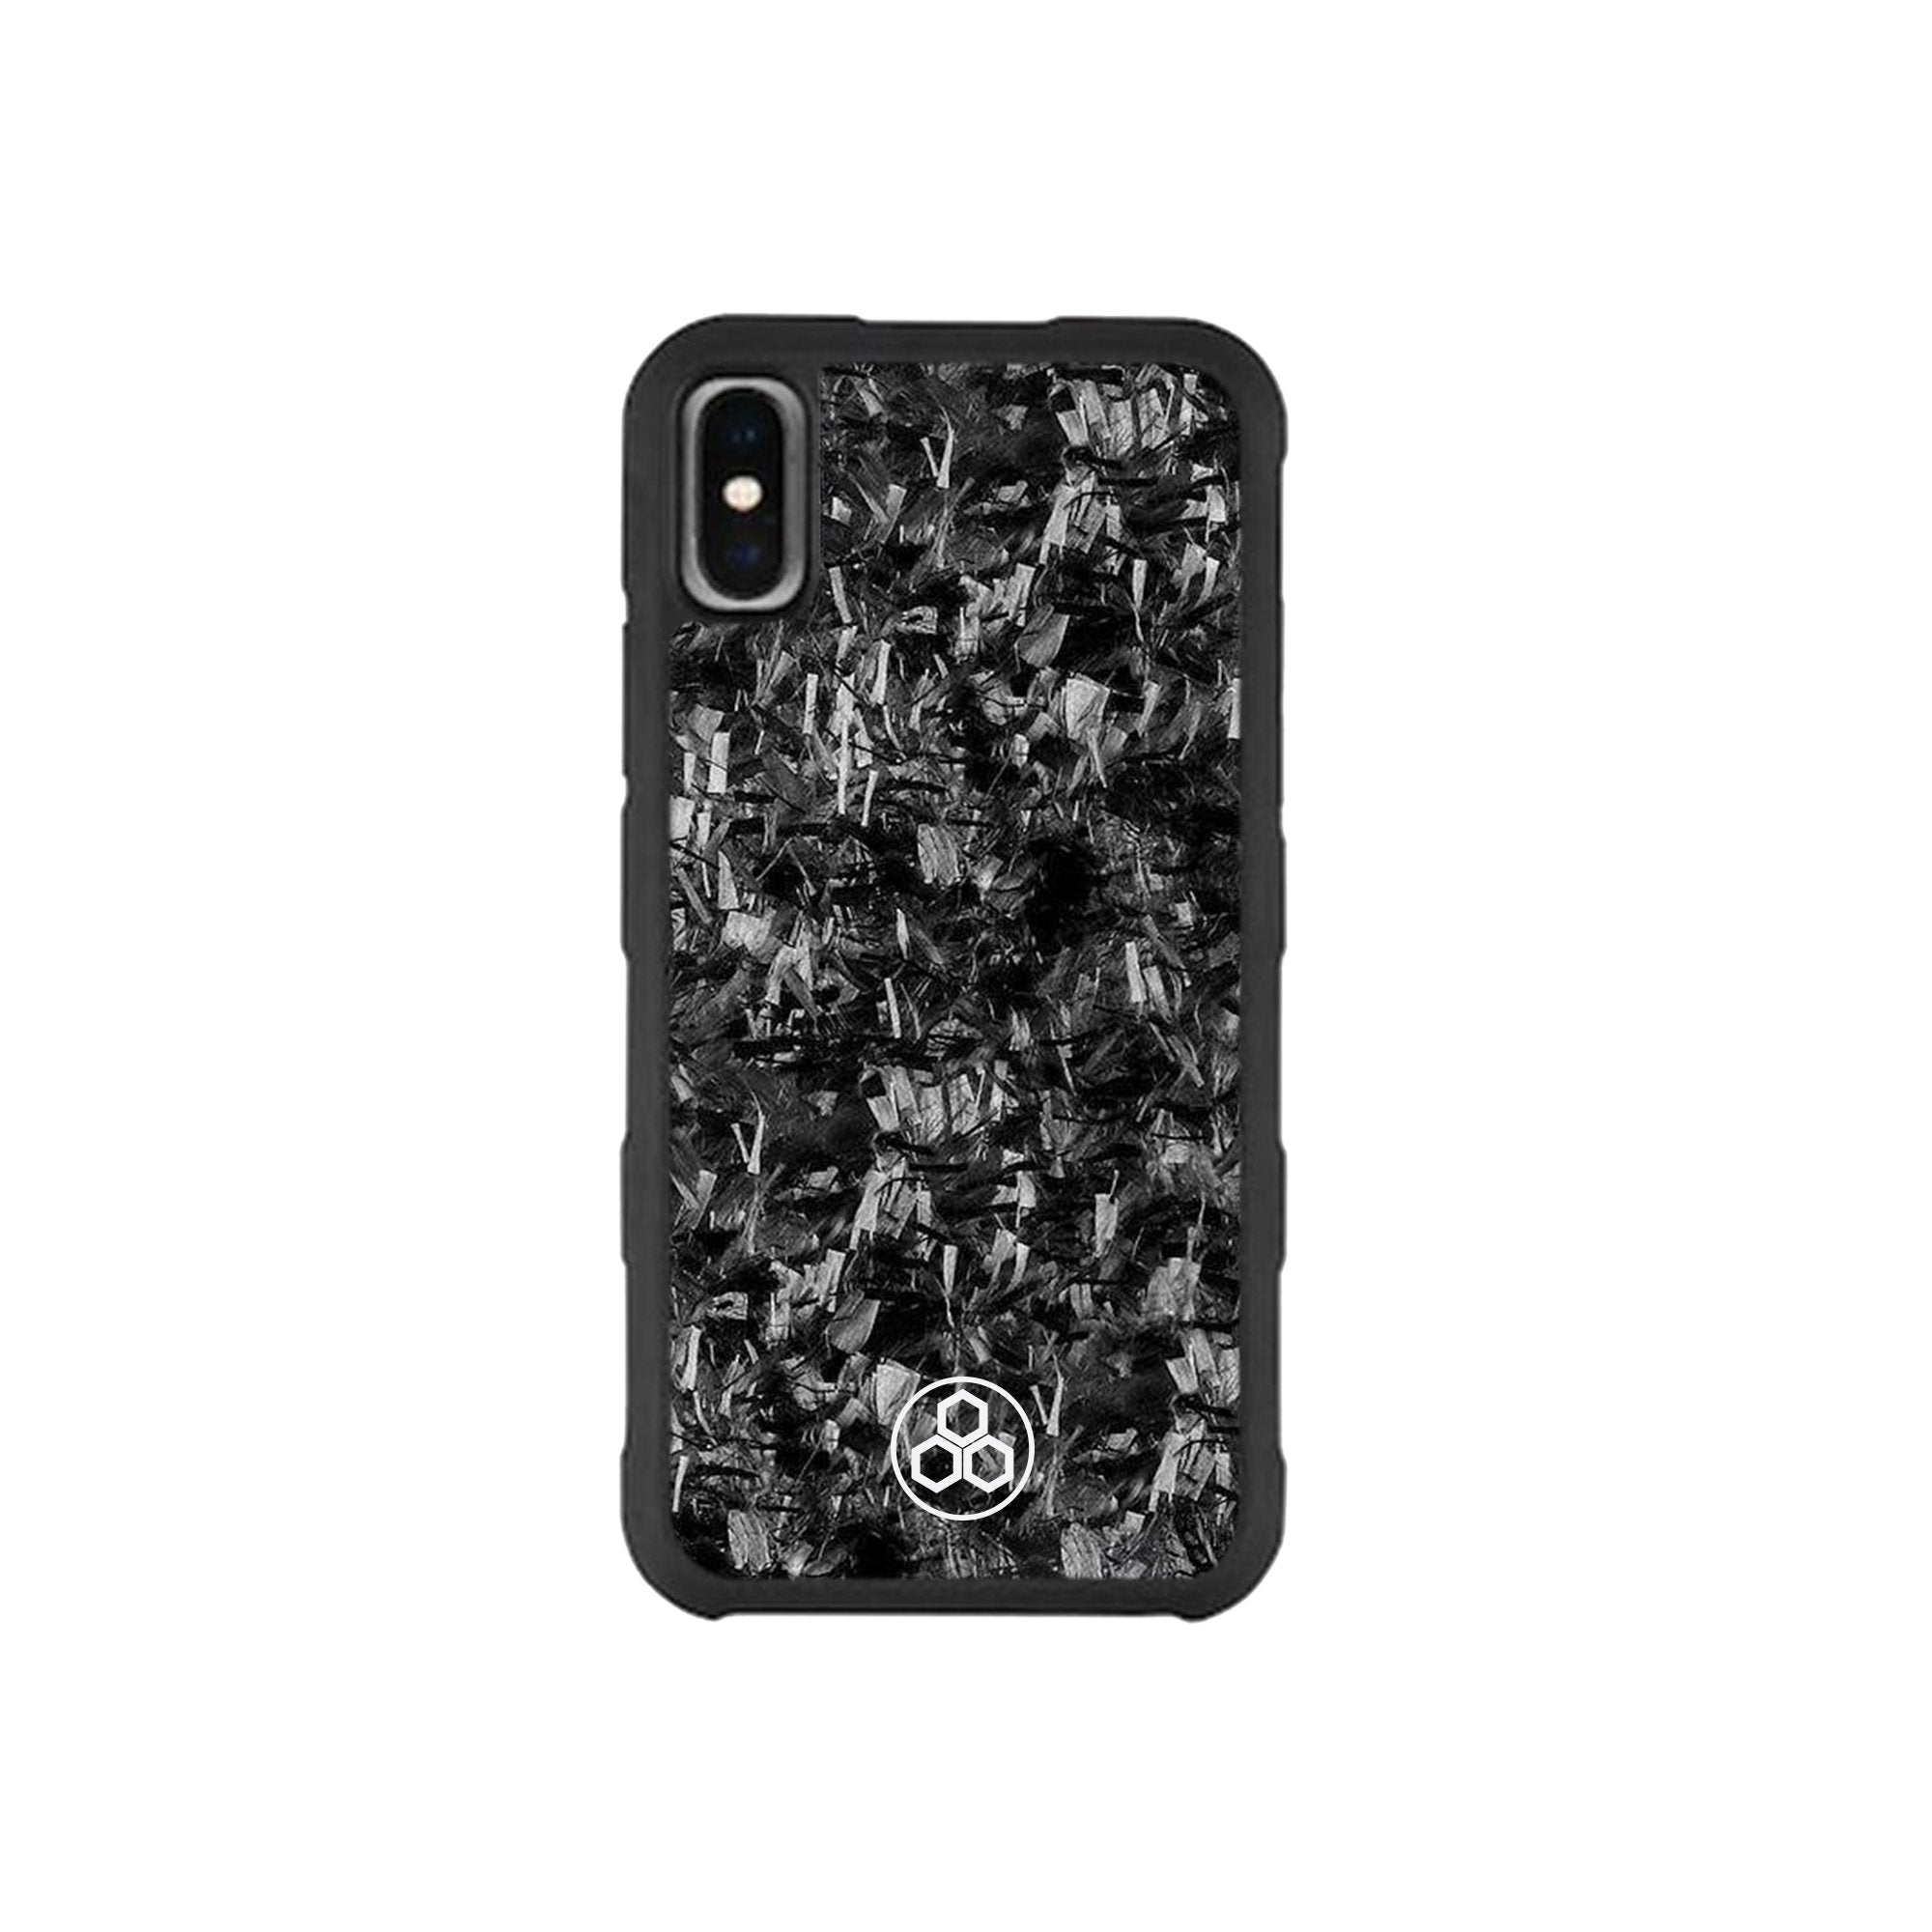 Forged Carbon Fiber iPhone X Case Pur Carbon